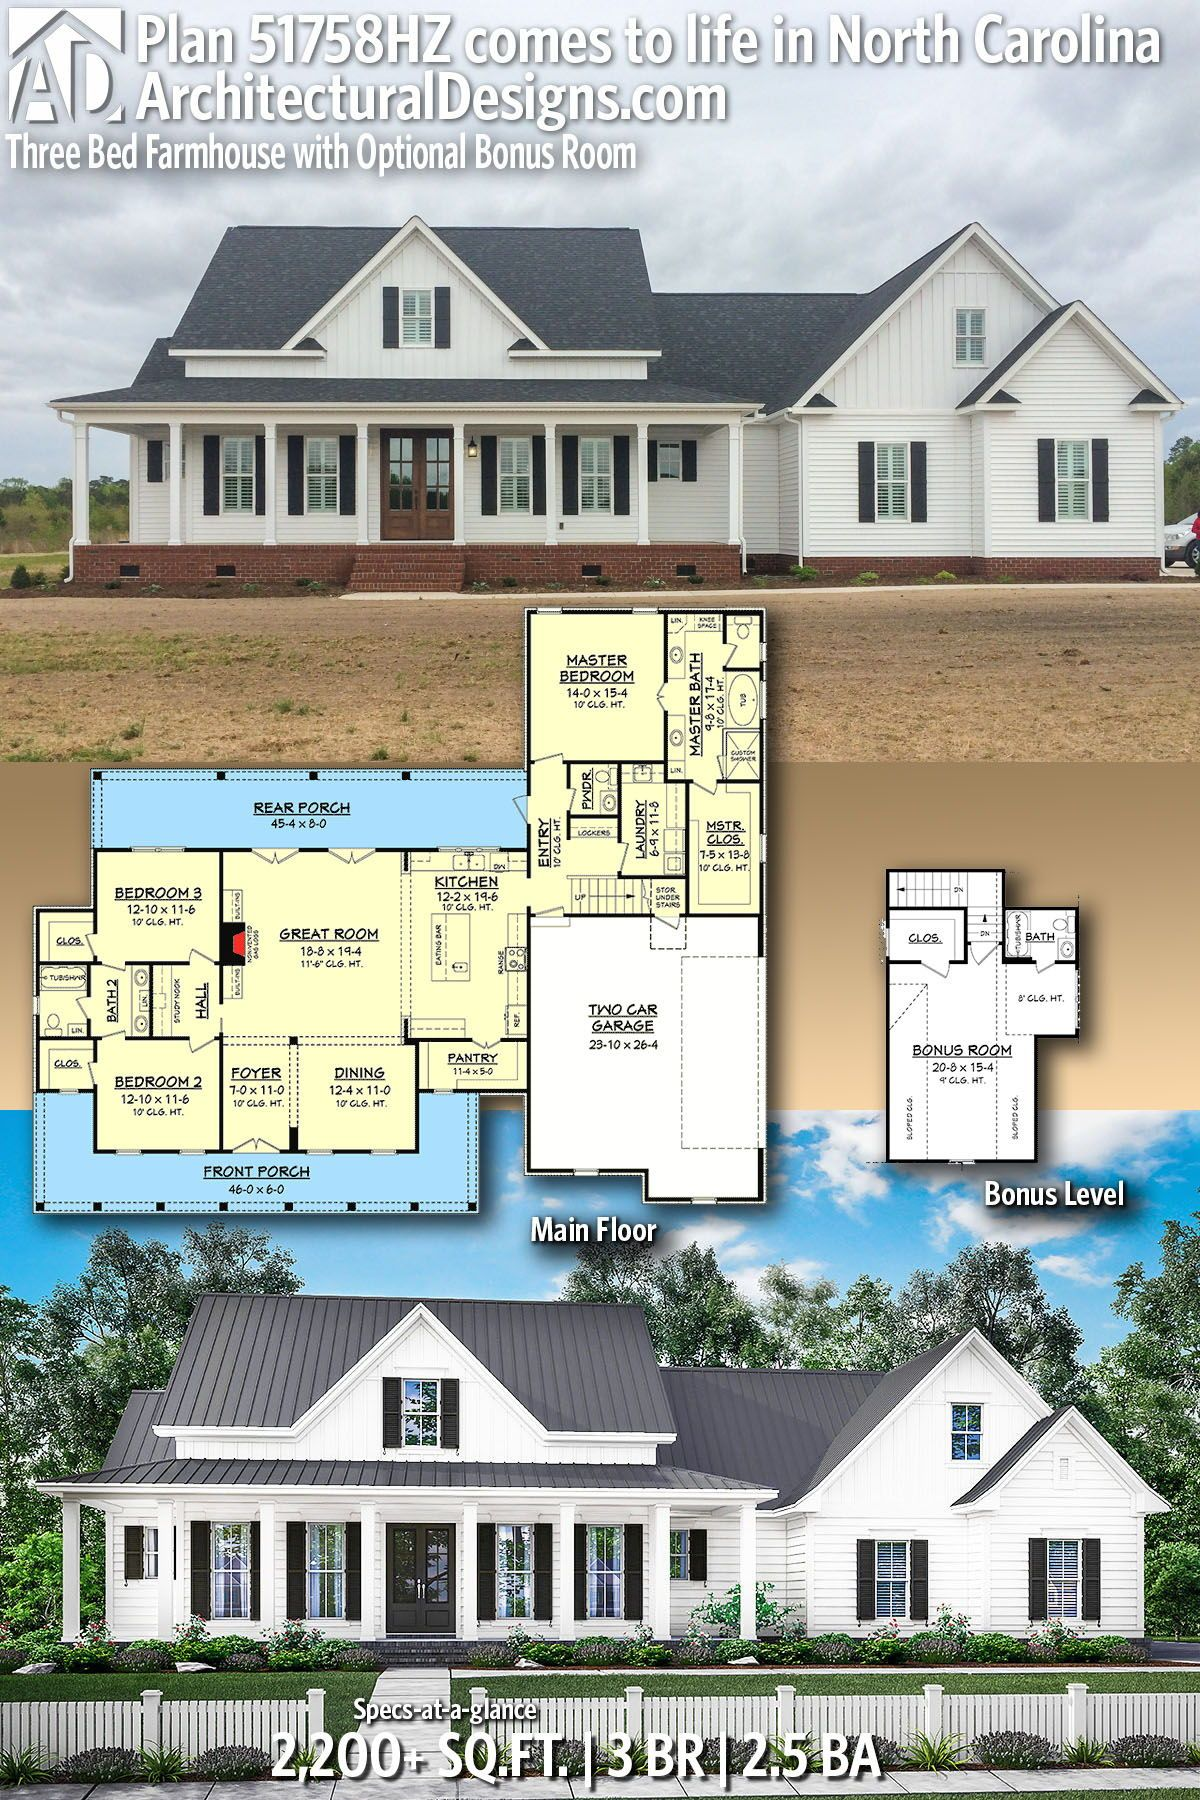 Architectural Designs House Plans archdesigns 3w 68